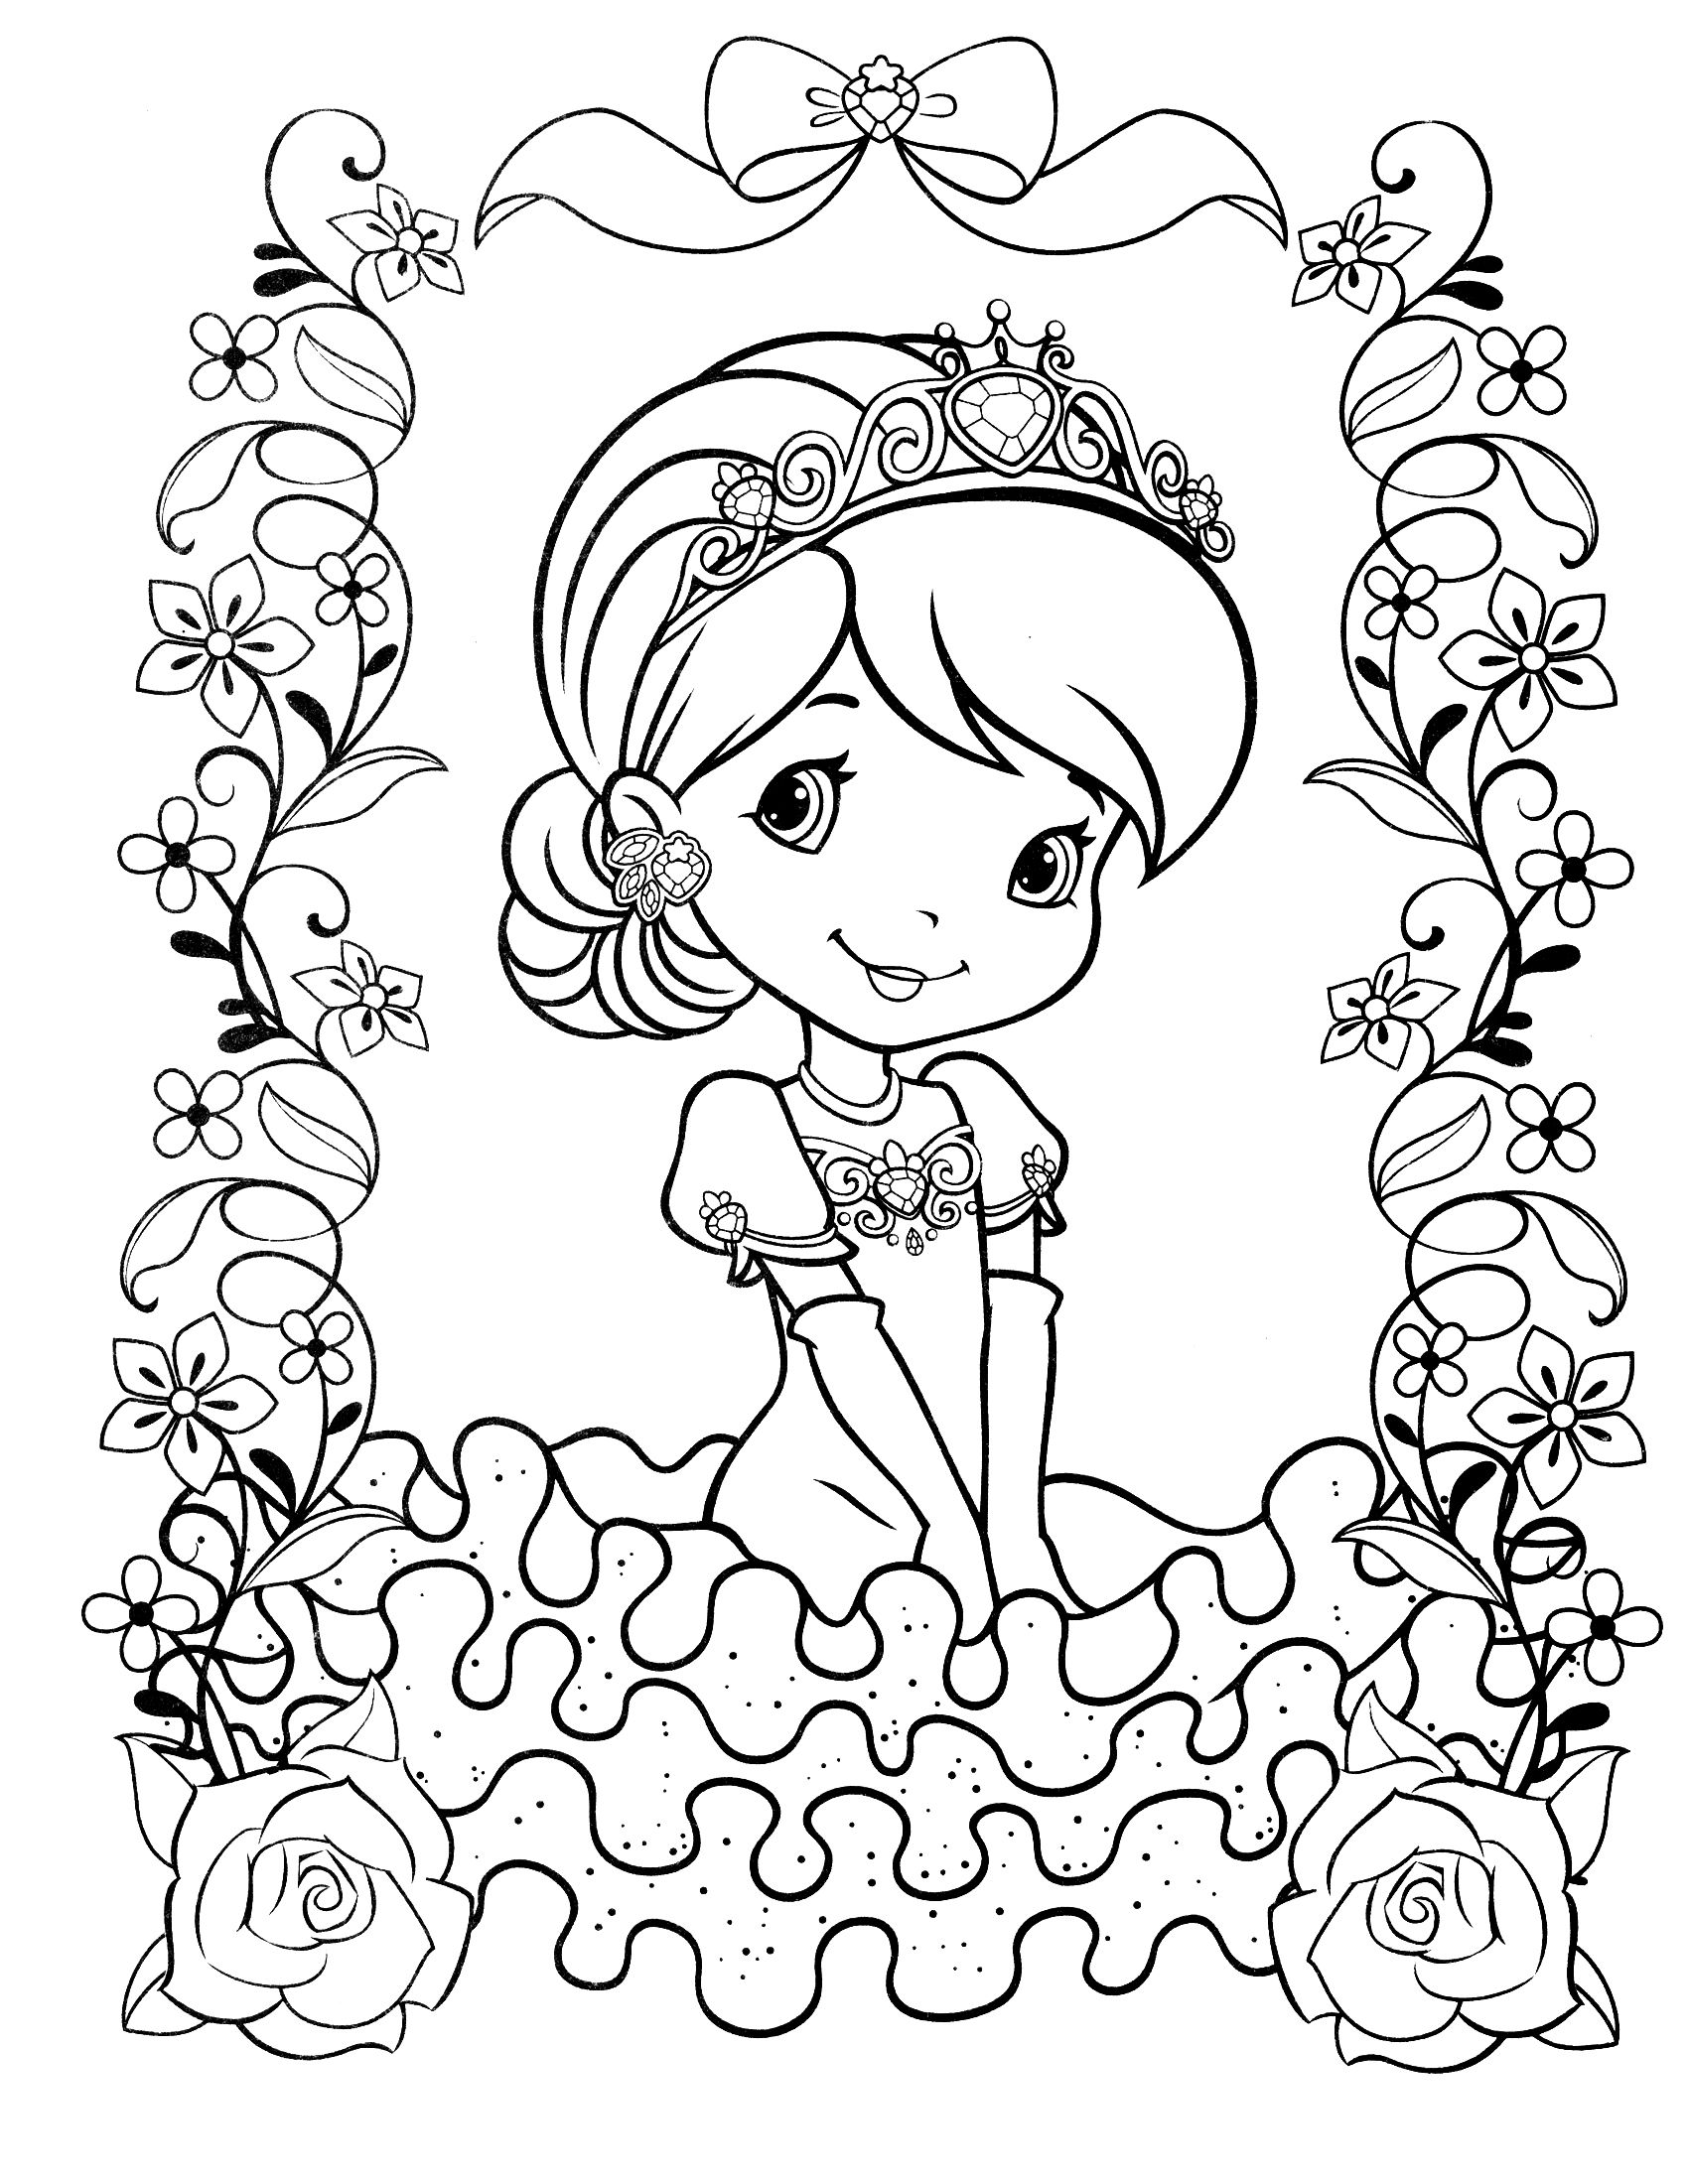 new strawberry shortcake coloring pages printable free coloring pages of new strawberry shortcake 11052 printable pages coloring new shortcake strawberry